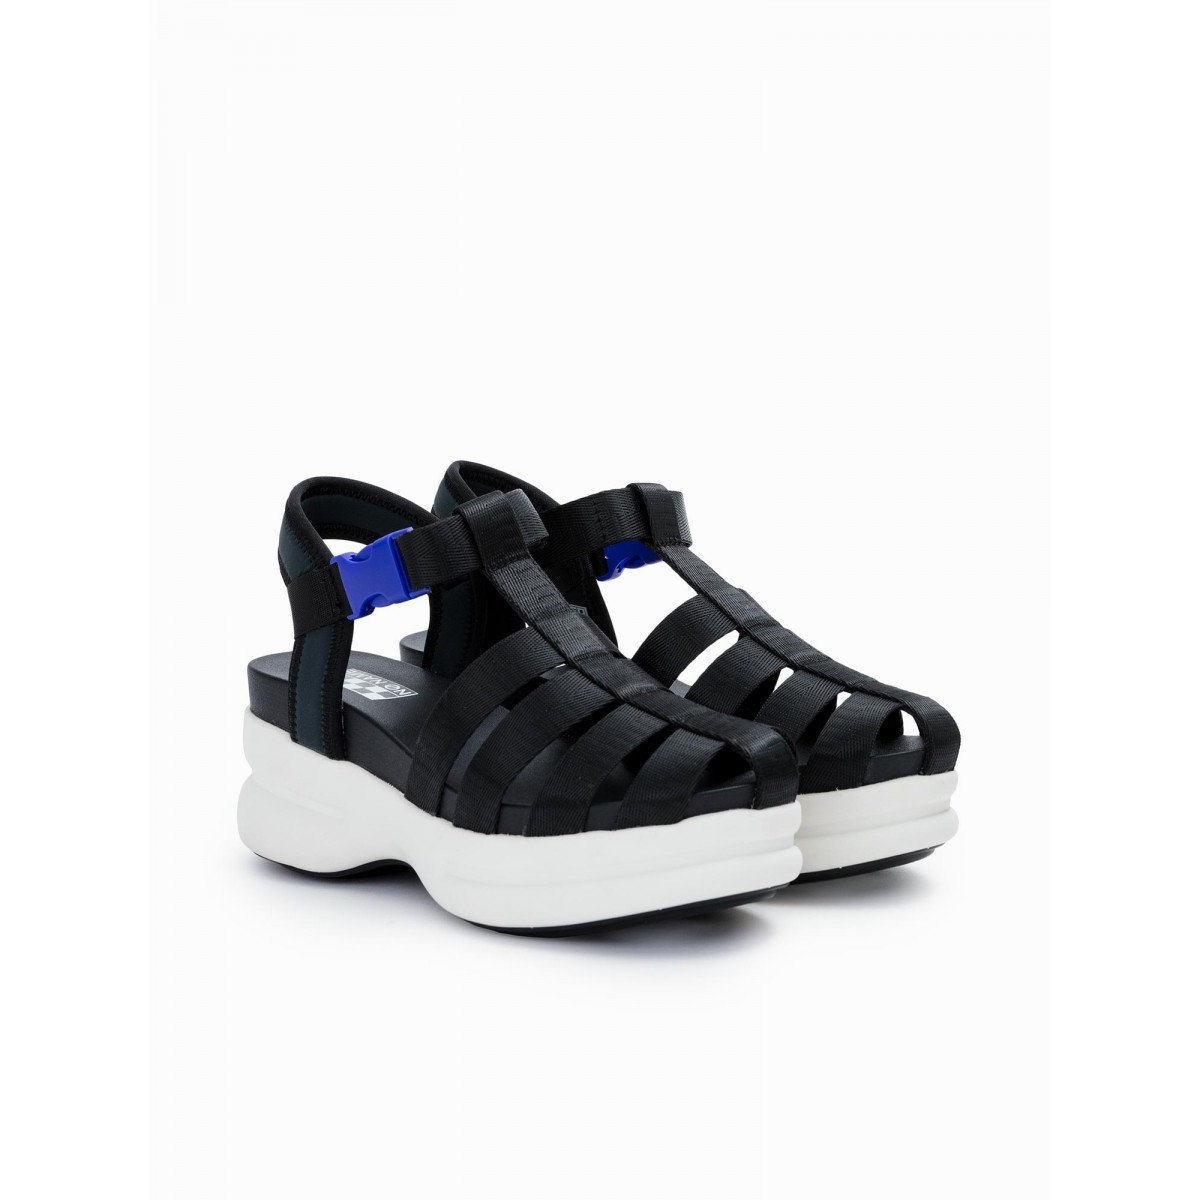 No Name CONCRETE STRAPPY - NYLON - BLACK SOLE WHITE